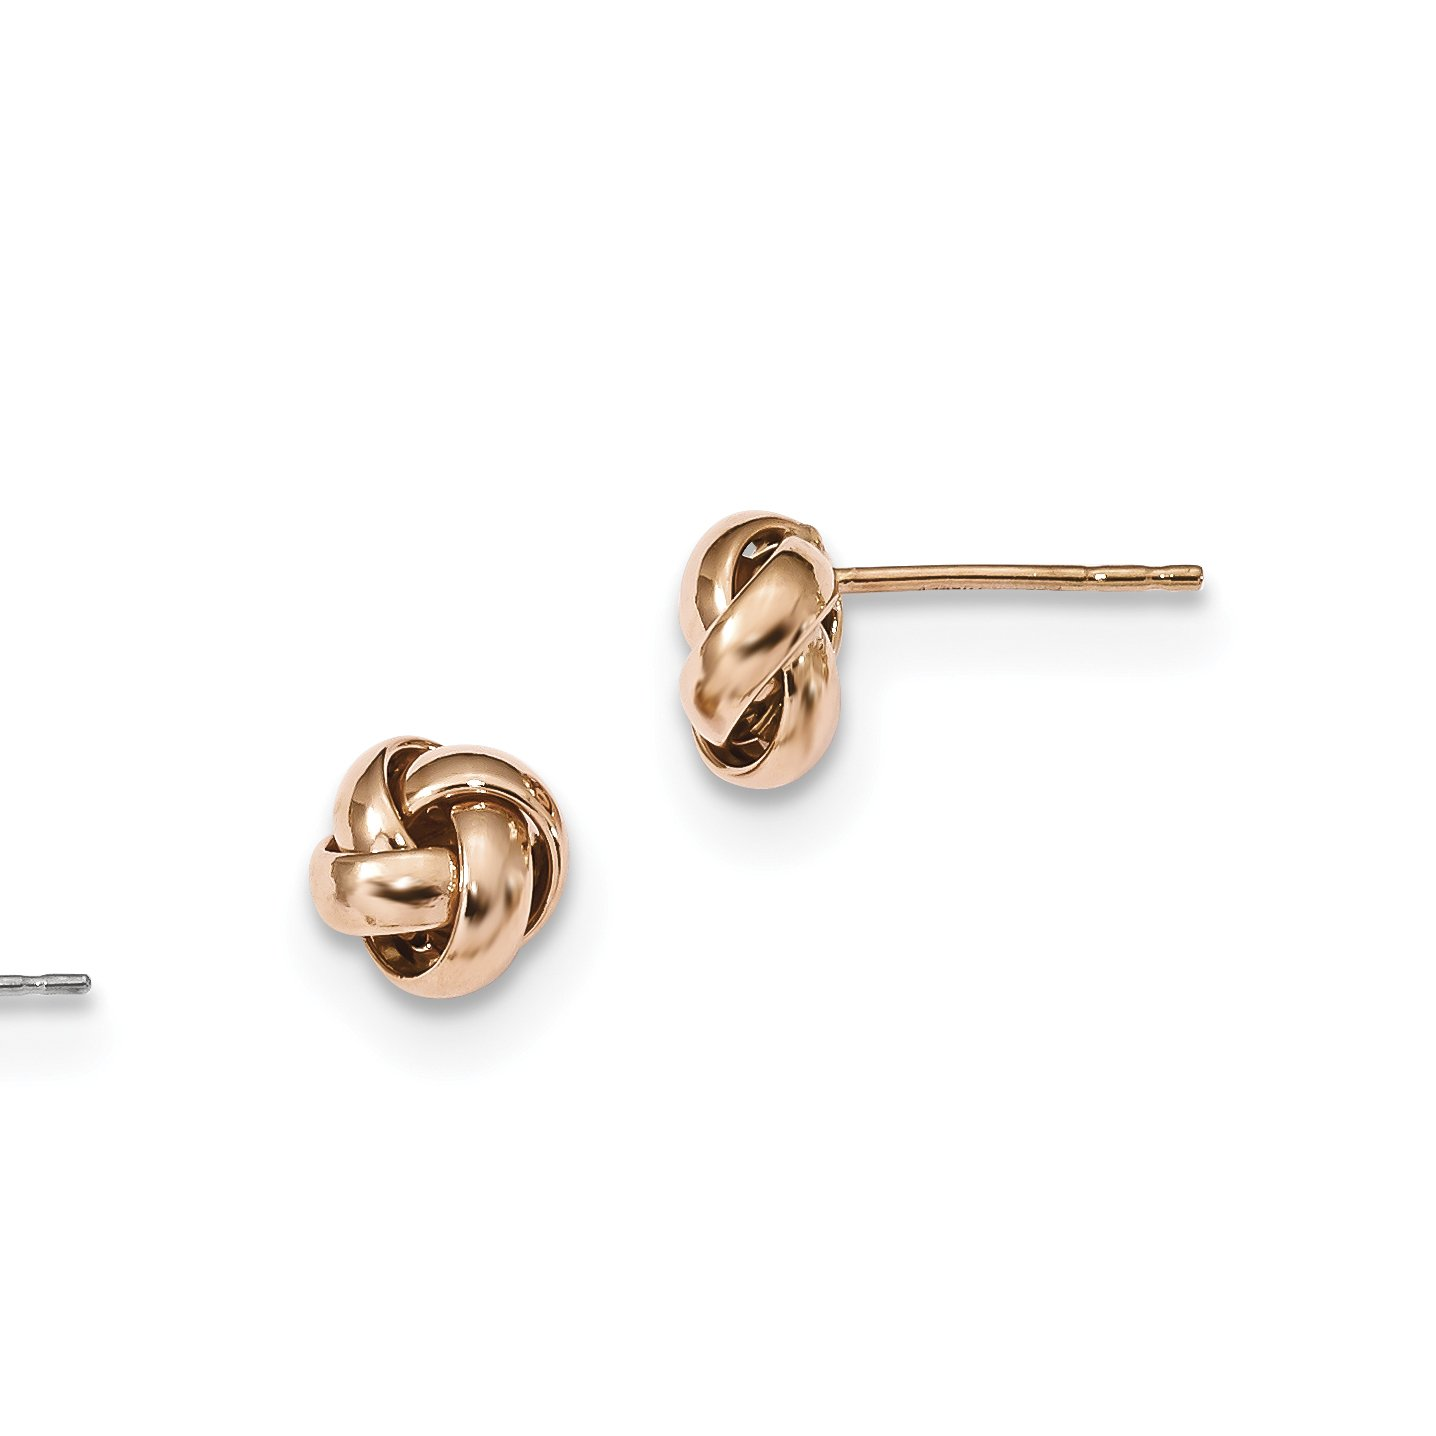 ICE CARATS 14k Rose Gold Love Knot Post Stud Ball Button Earrings Fine Jewelry Gift Set For Women Heart